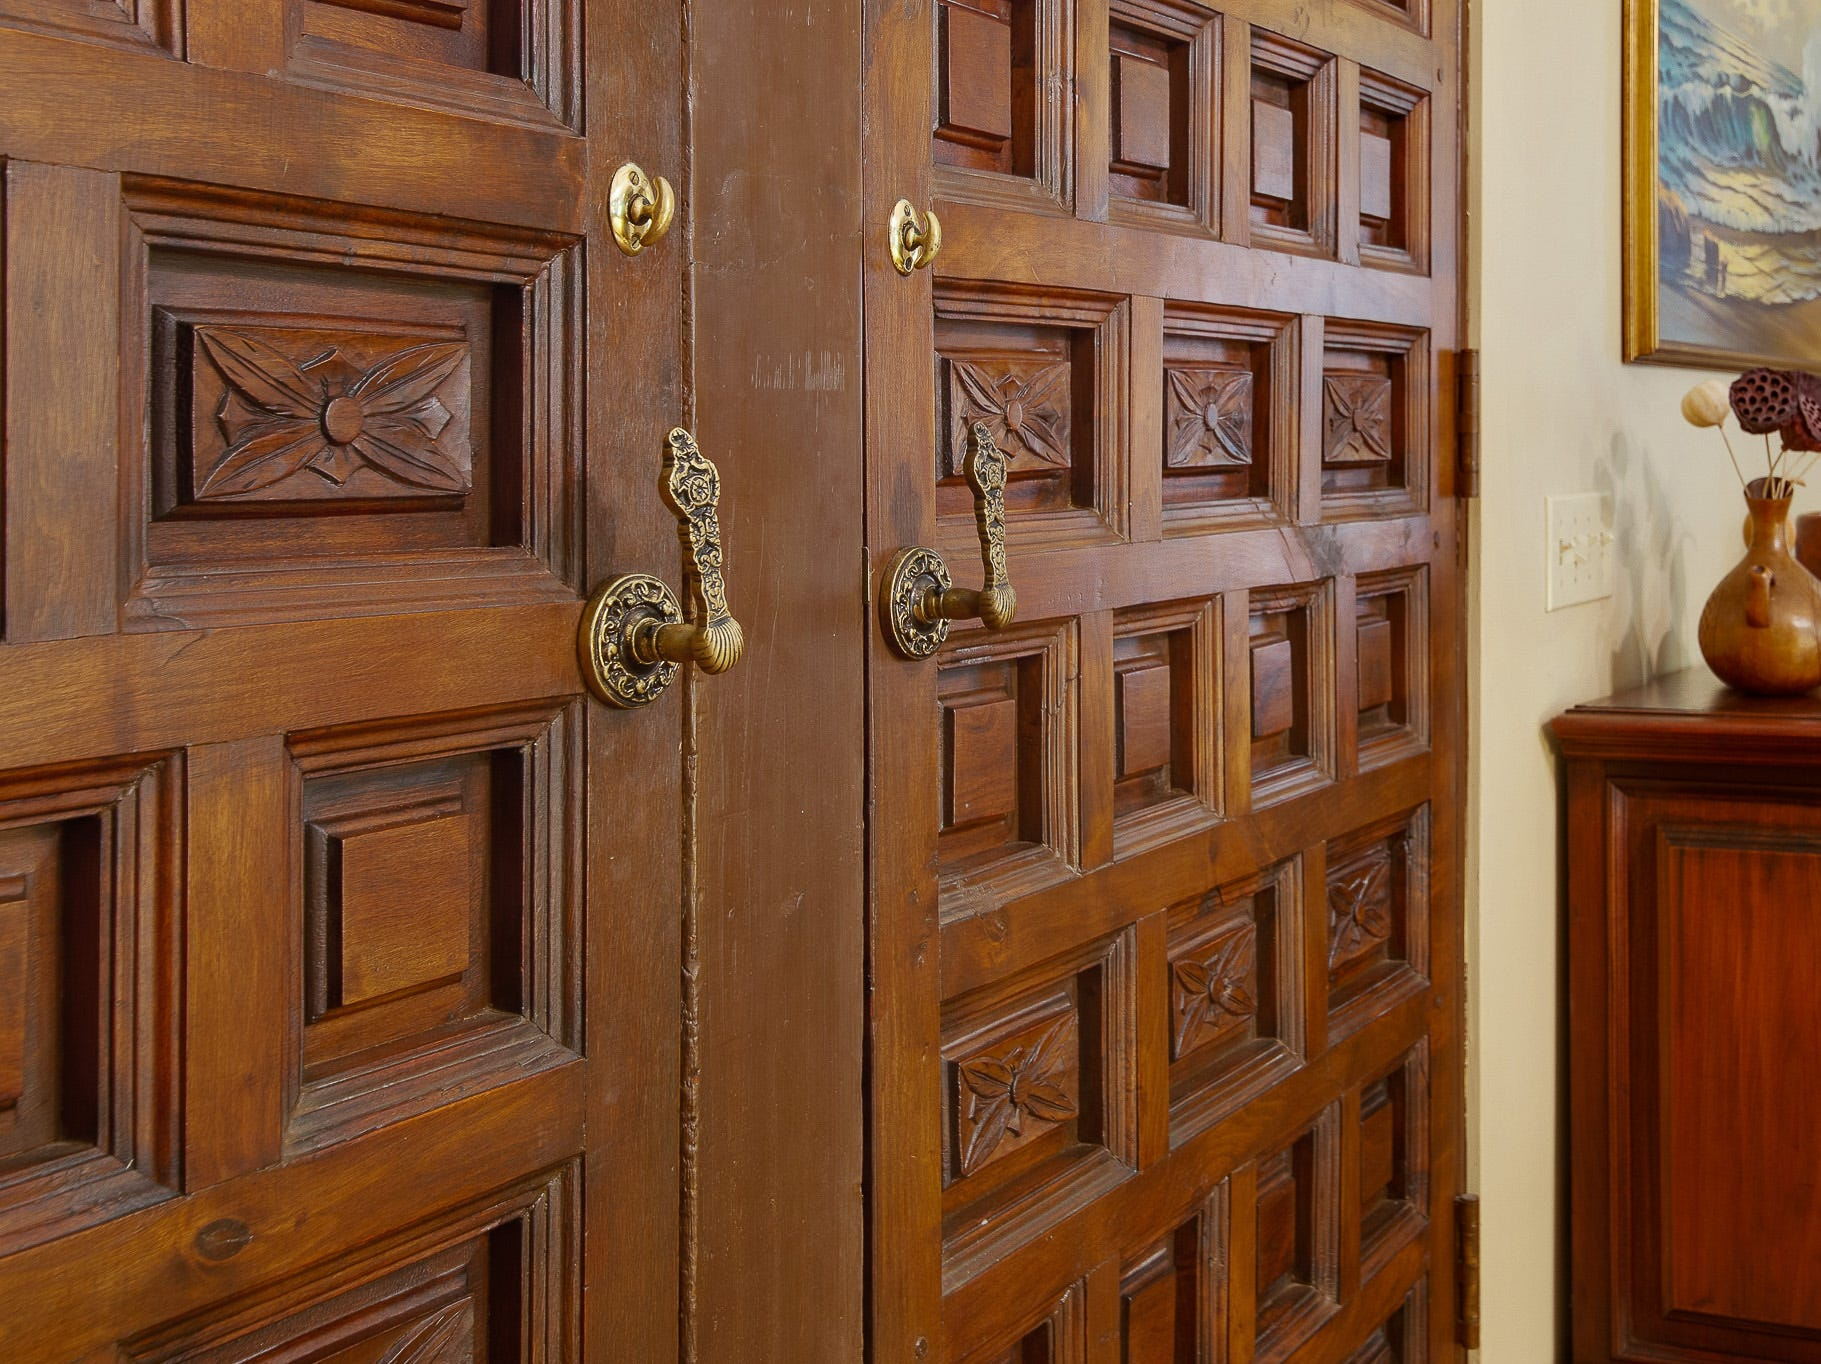 The massive front doors at 110 Thissell in Greenville were custom-made in Spain.